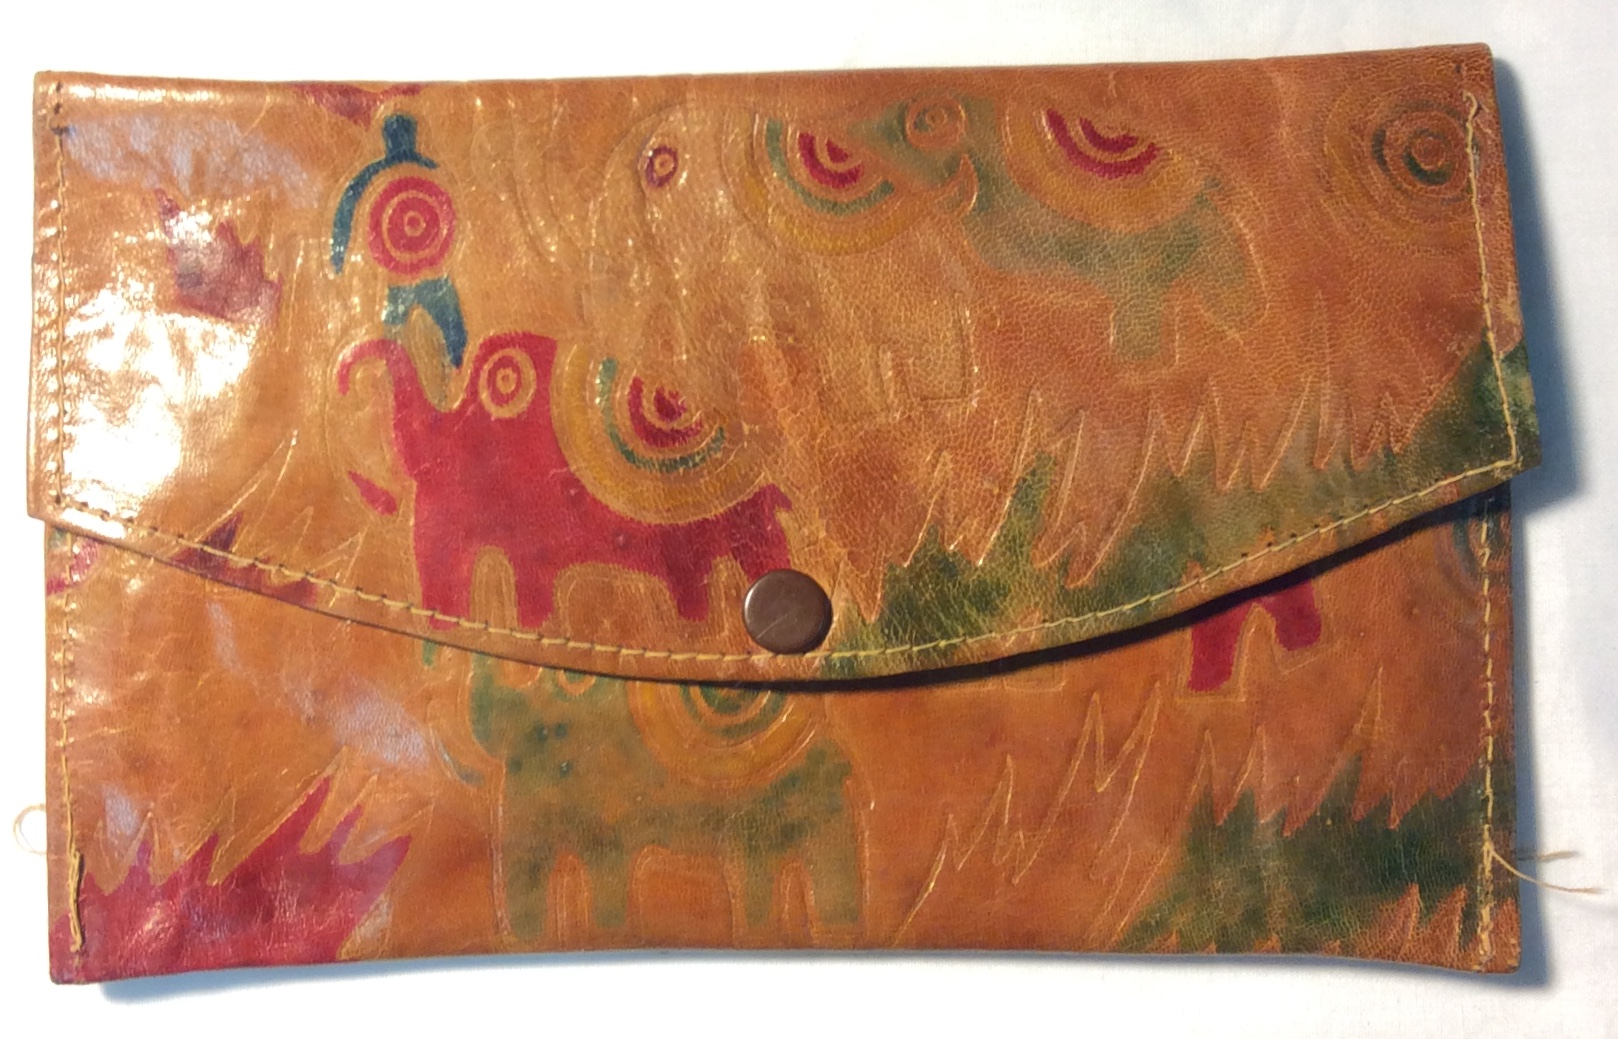 Light brown leather with red & green